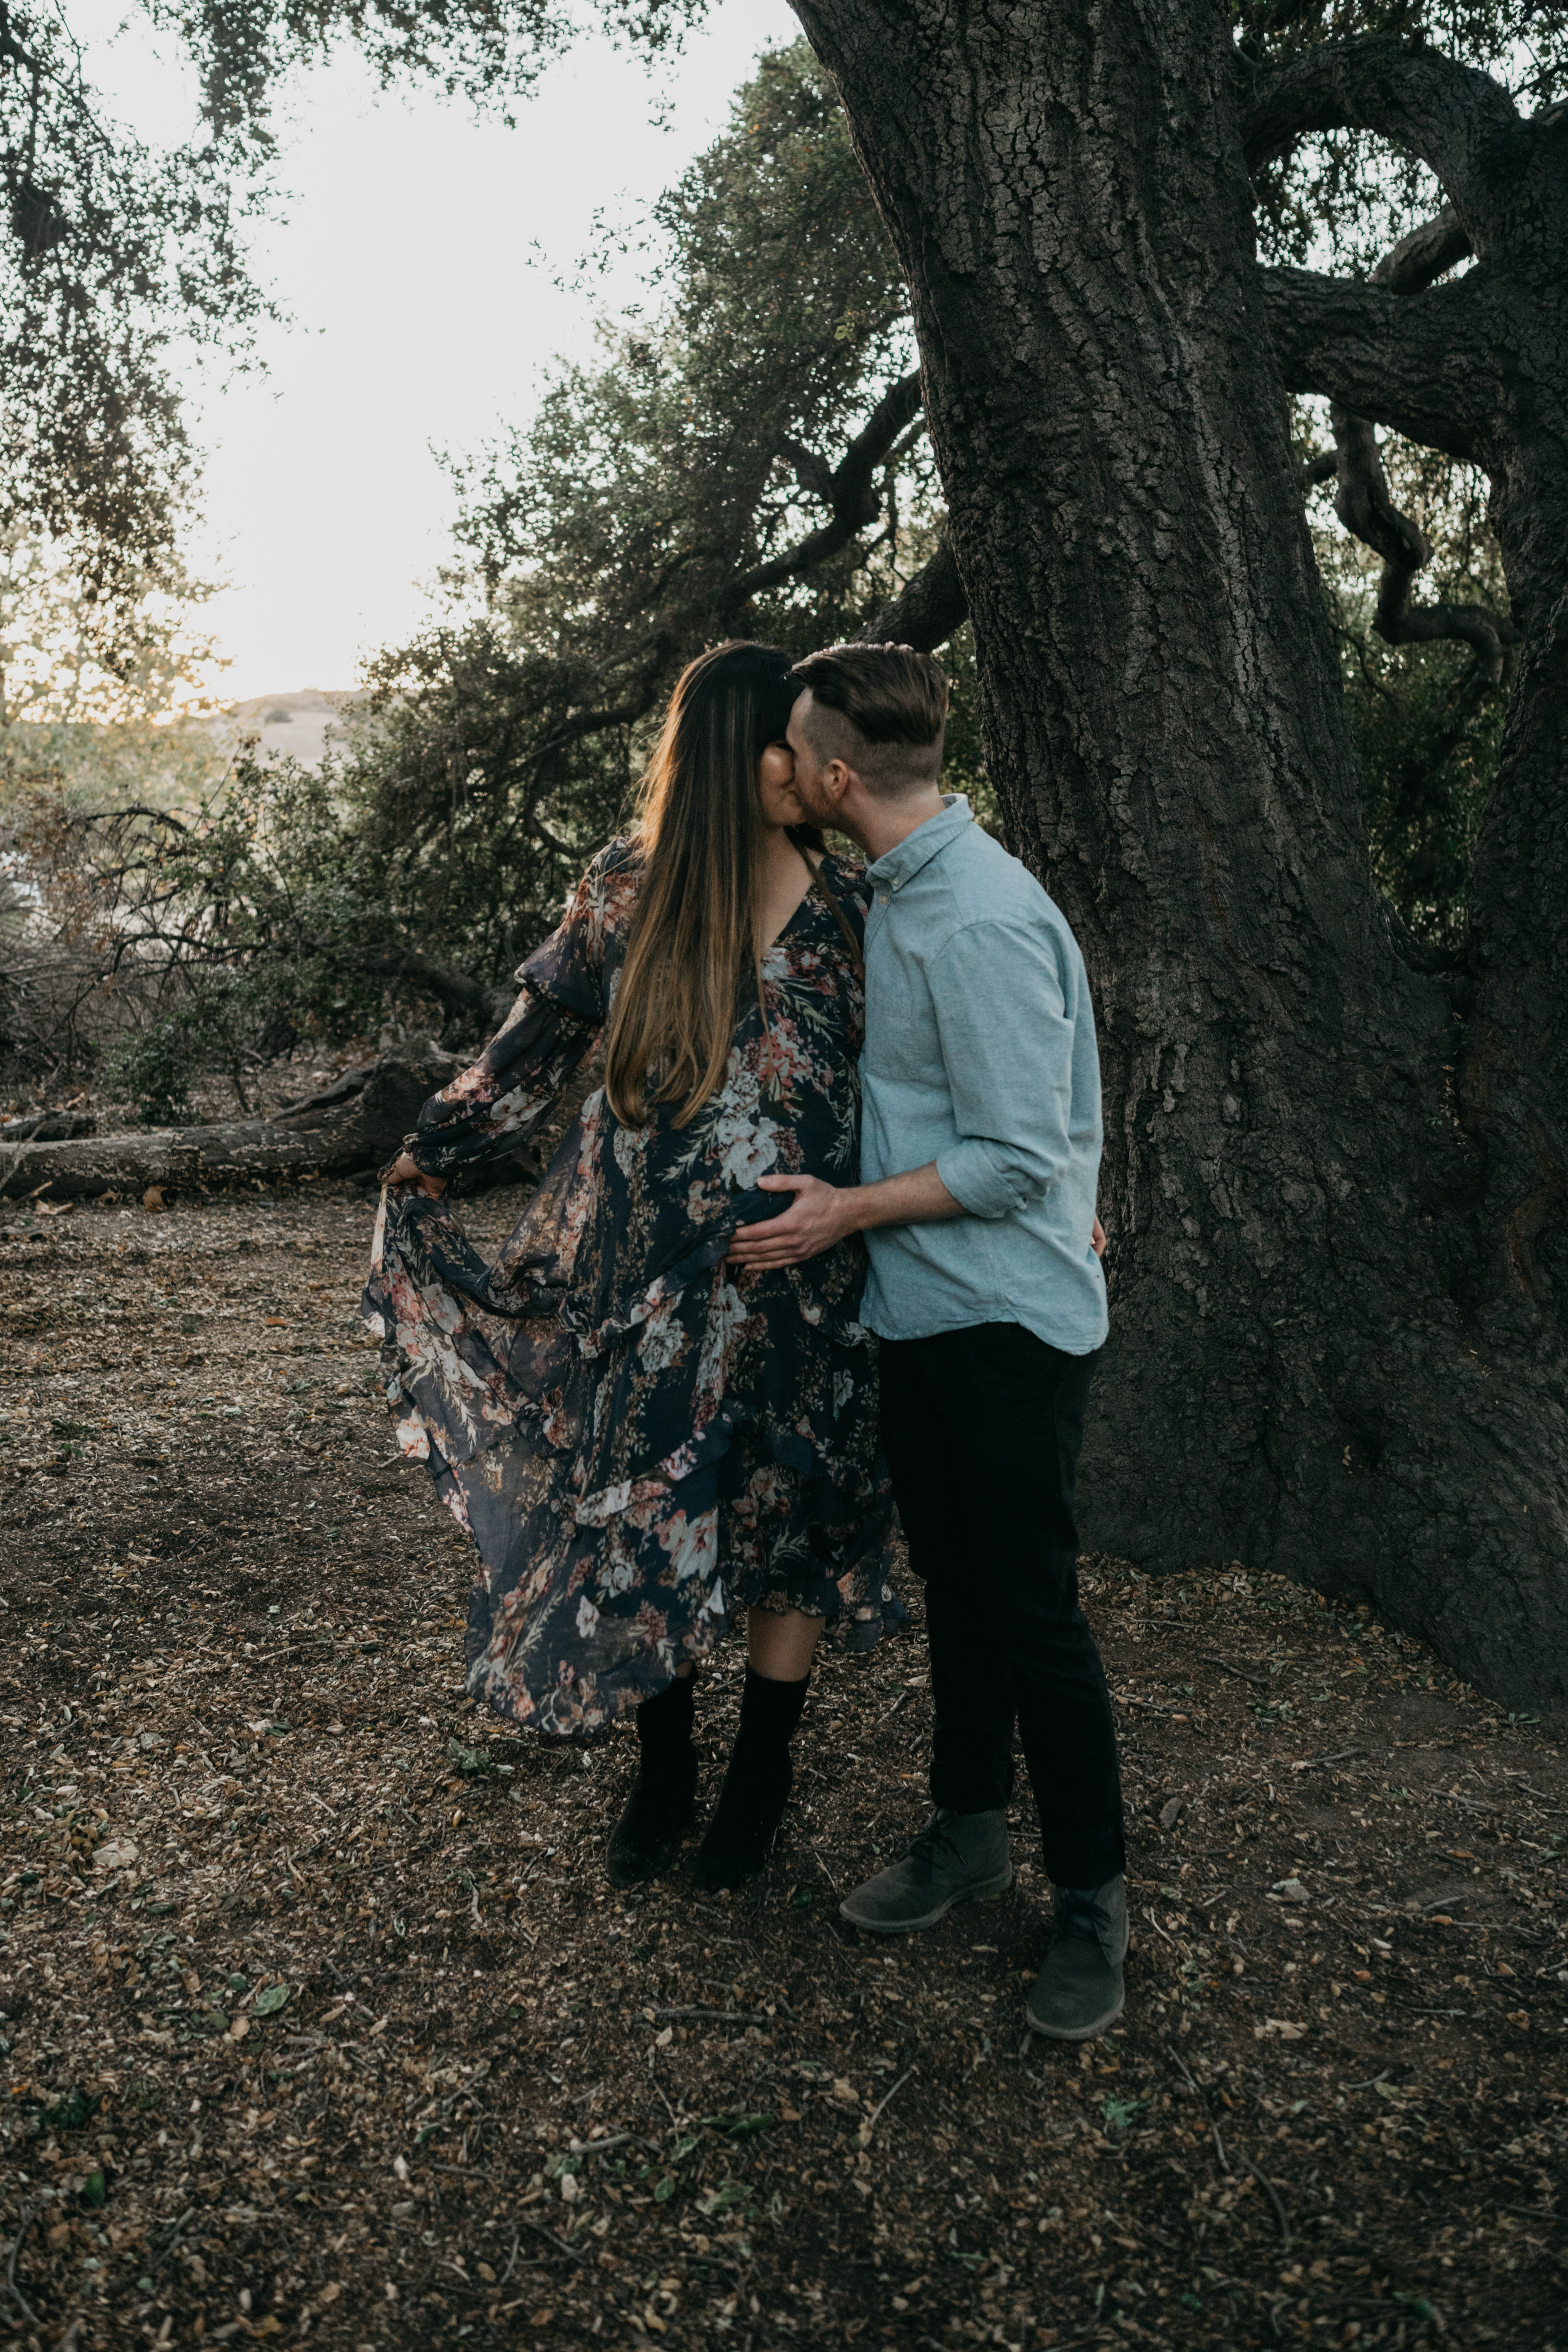 Thomas F Riley Wilderness Park Maternity Session, image by Fatima Elreda Photo